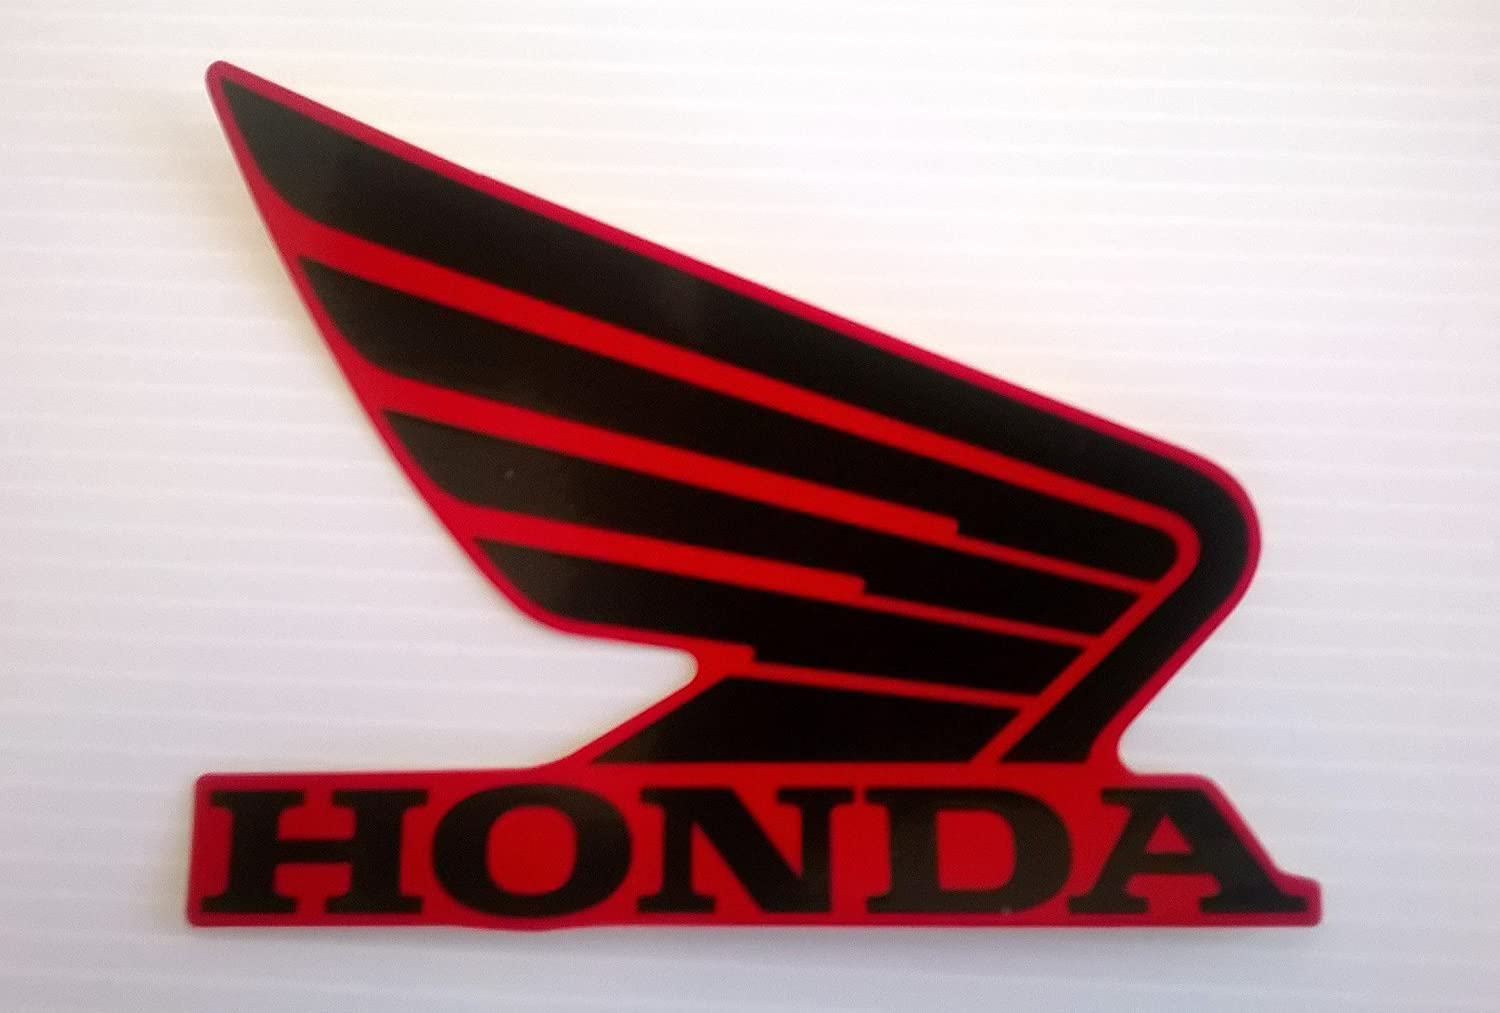 Honda 86201-K26-A00ZB Honda Wings Fuel Tank Gas Tank Stickers Decals 2 X 85MM Black Red Left /& Right Genuine 86201-K26-A00ZB